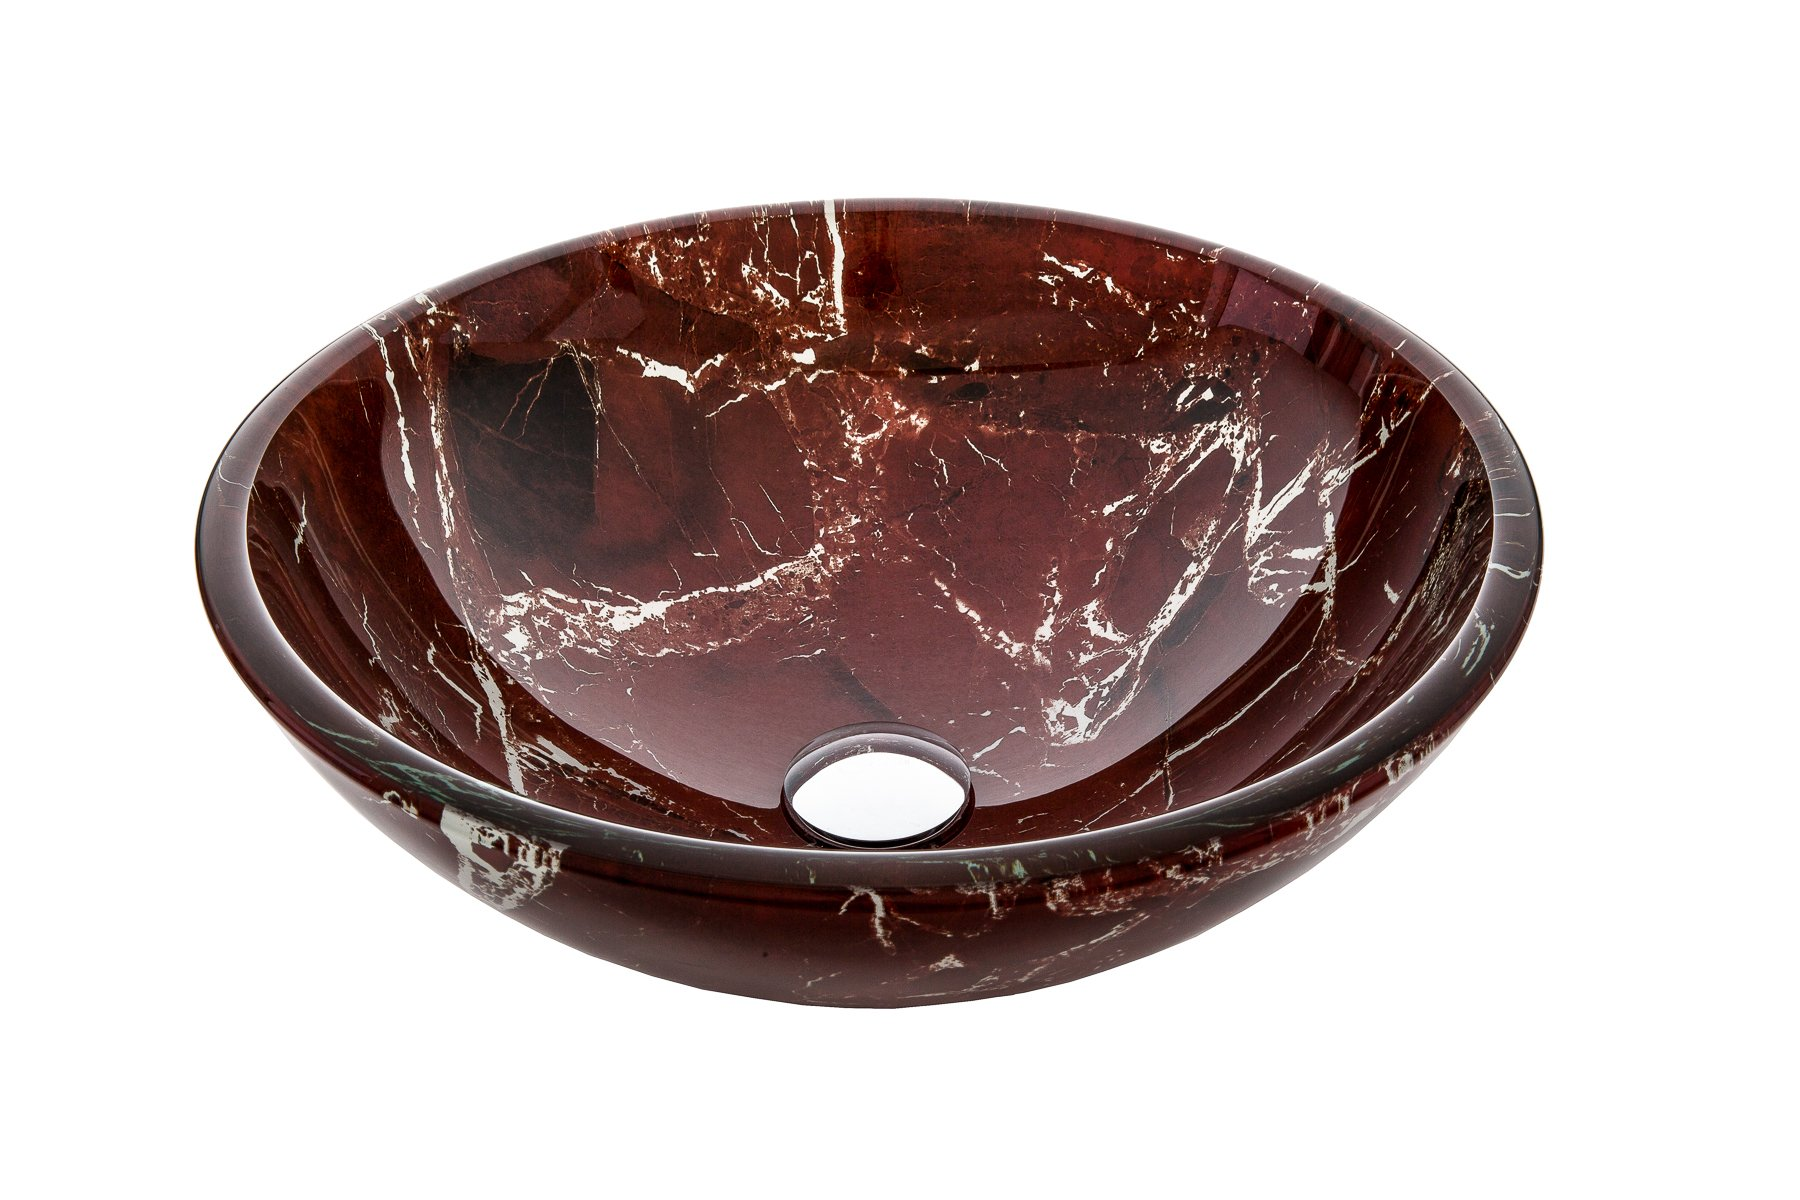 Jano JGV17 Burgundy Marble Tempered Glass Vessel Bathroom Sink With Pop-up Drain